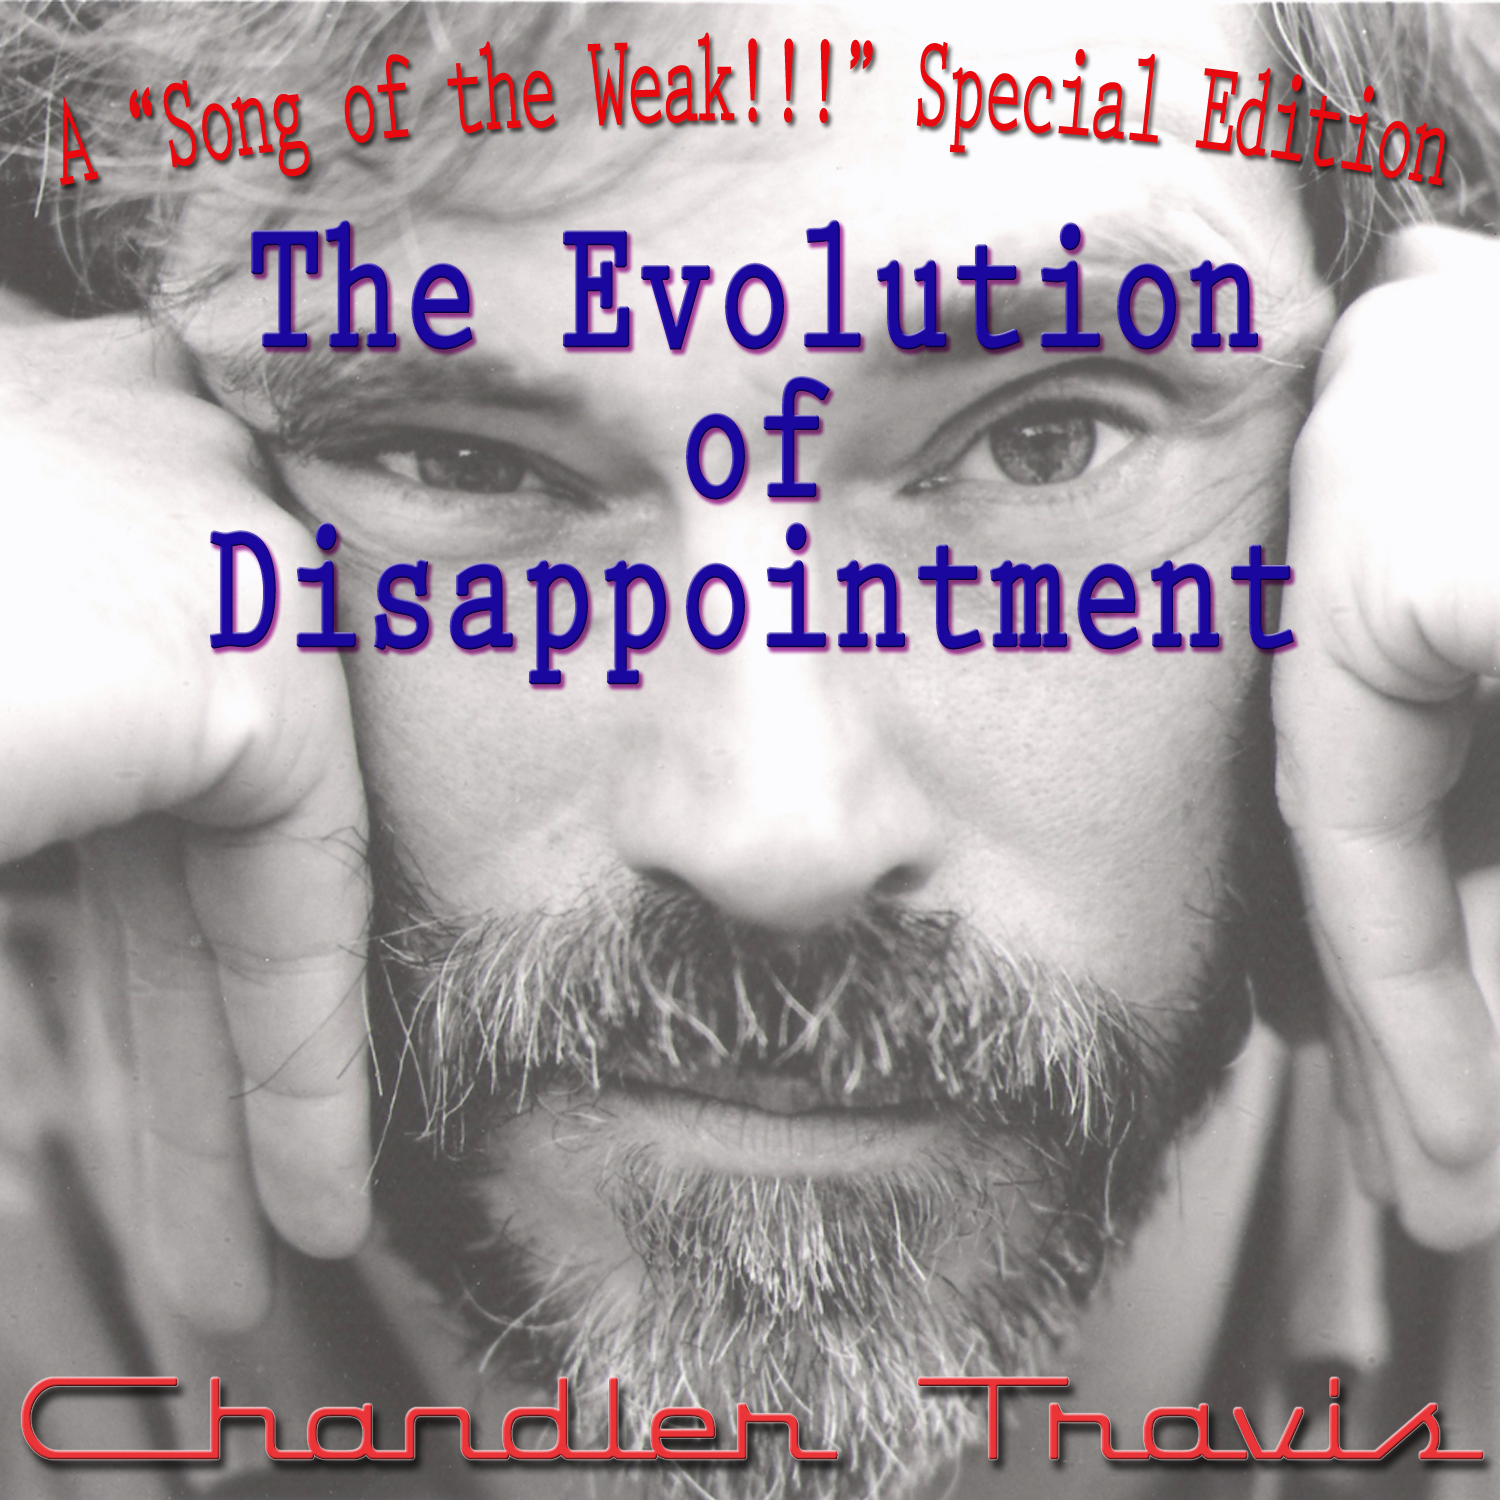 The Evolution of Disappointment – Chapter Three